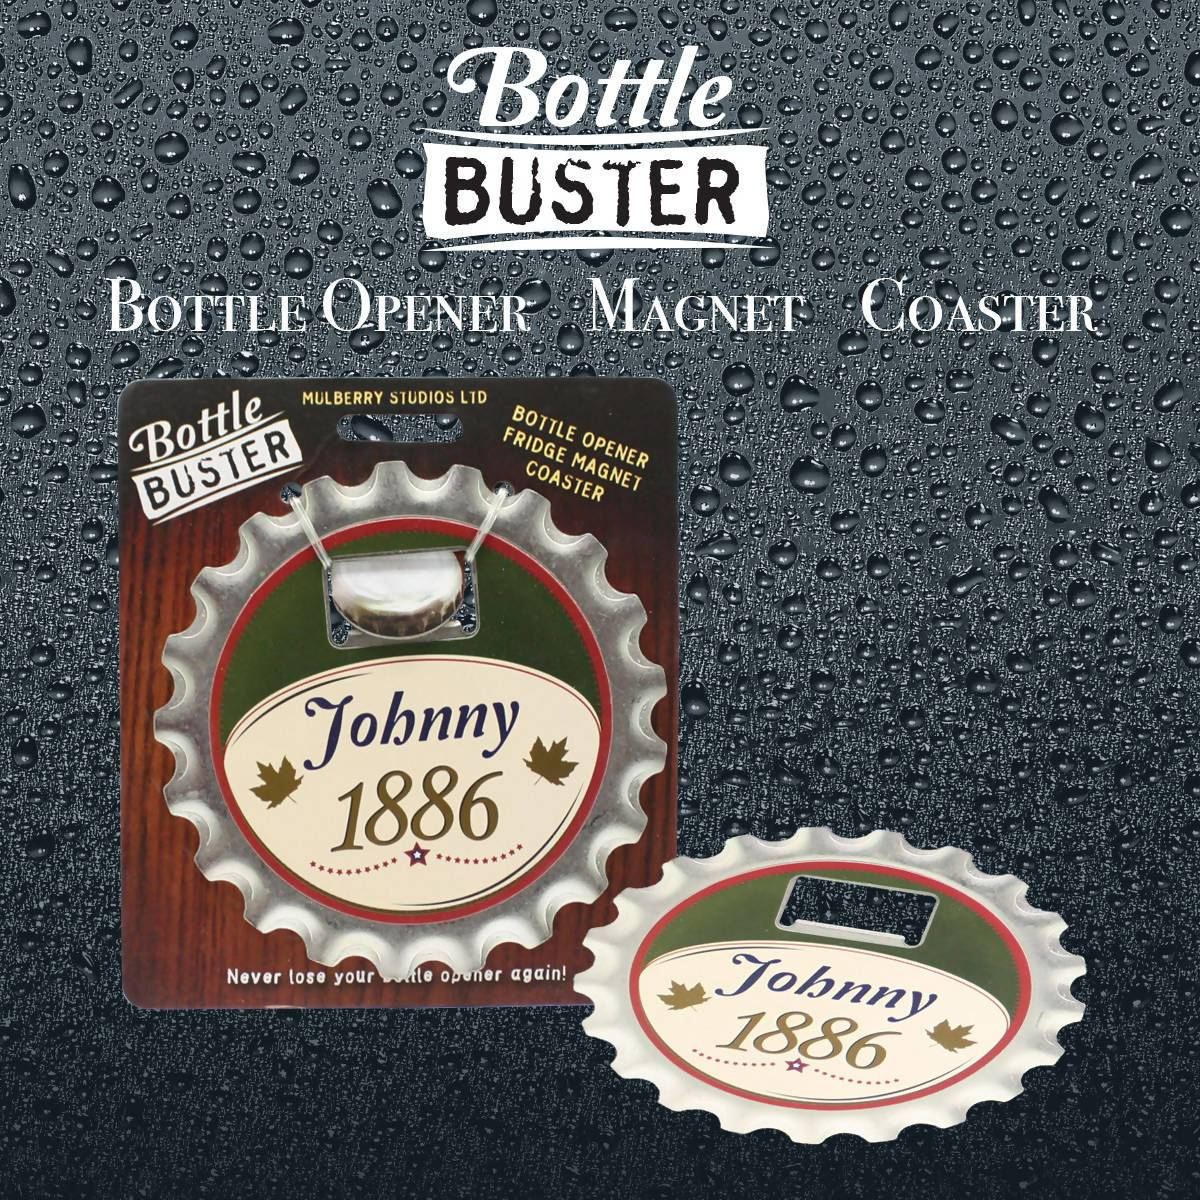 BOTTLE BUSTER - Best Bottle Opener : Johnny - Bottle Openers - La Belle Collection - Naiise